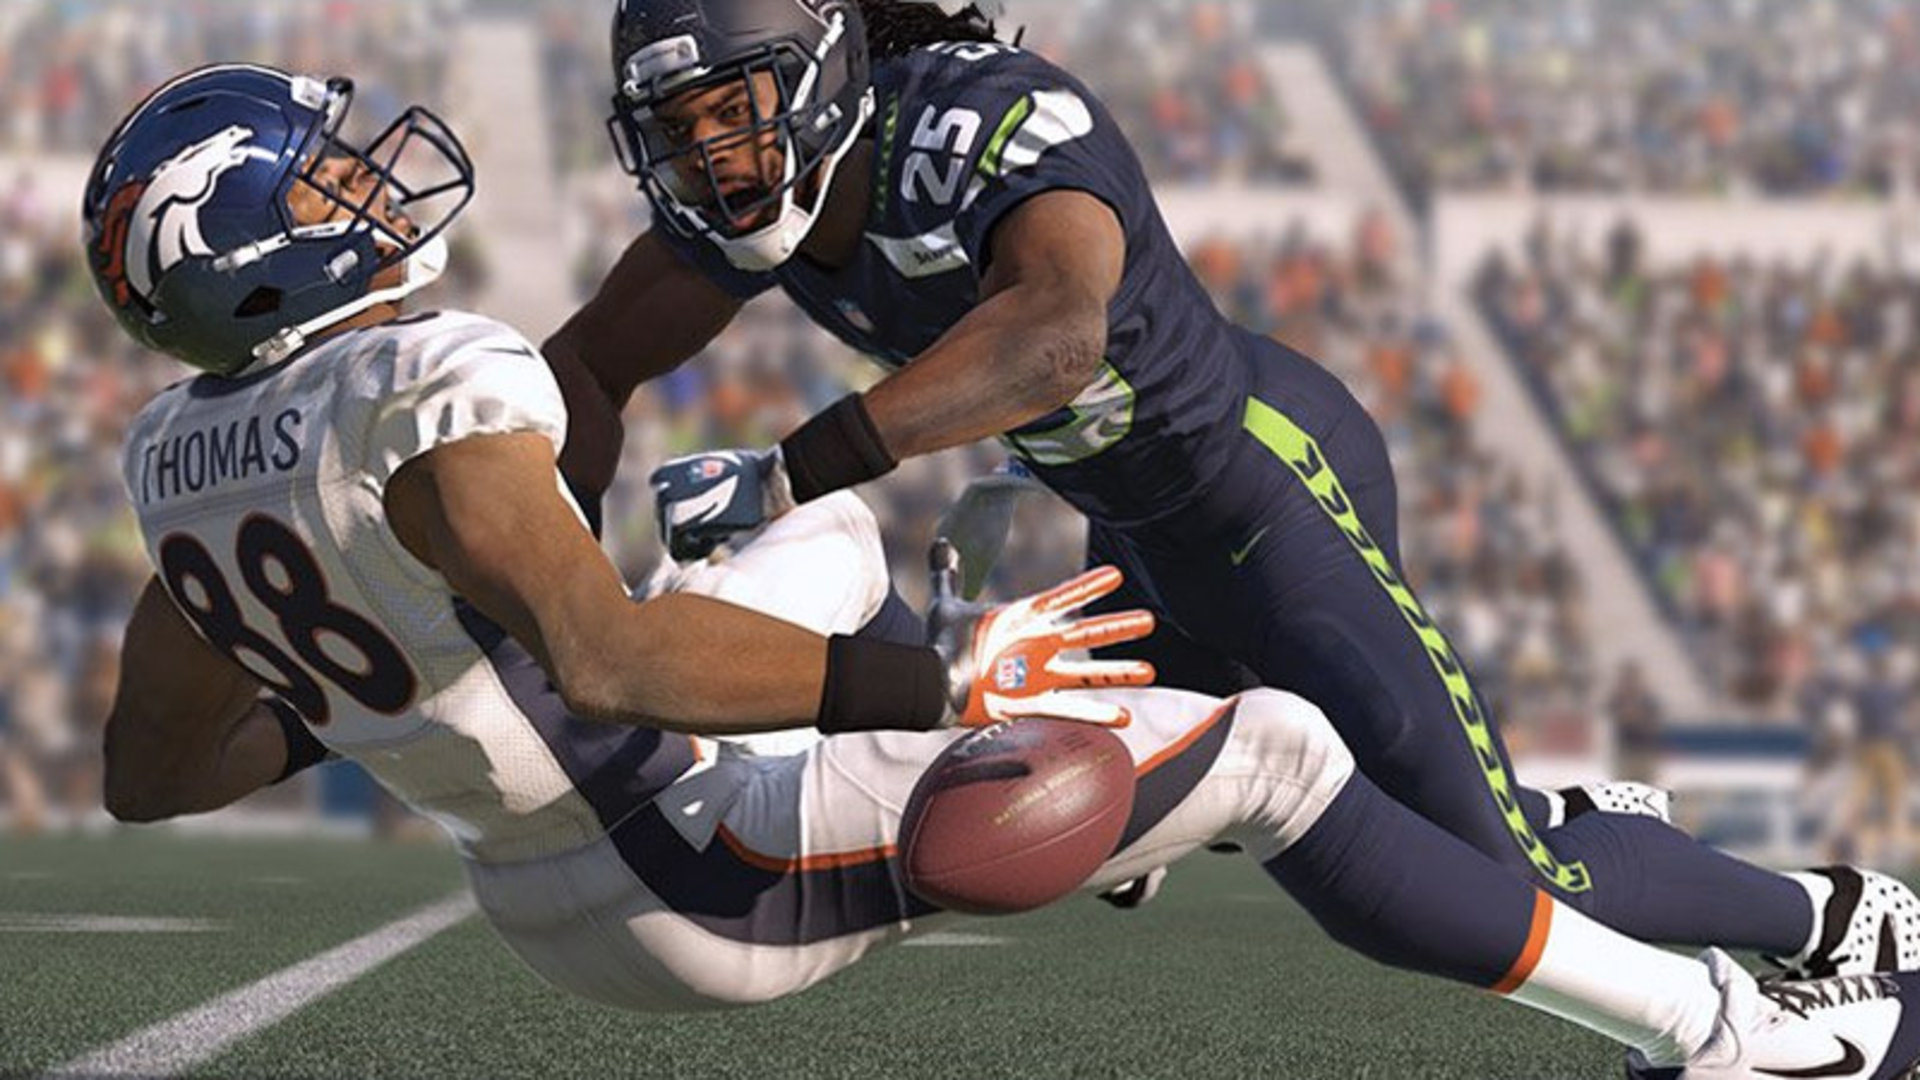 Defense is at the forefront of this year's Madden NFL experience.